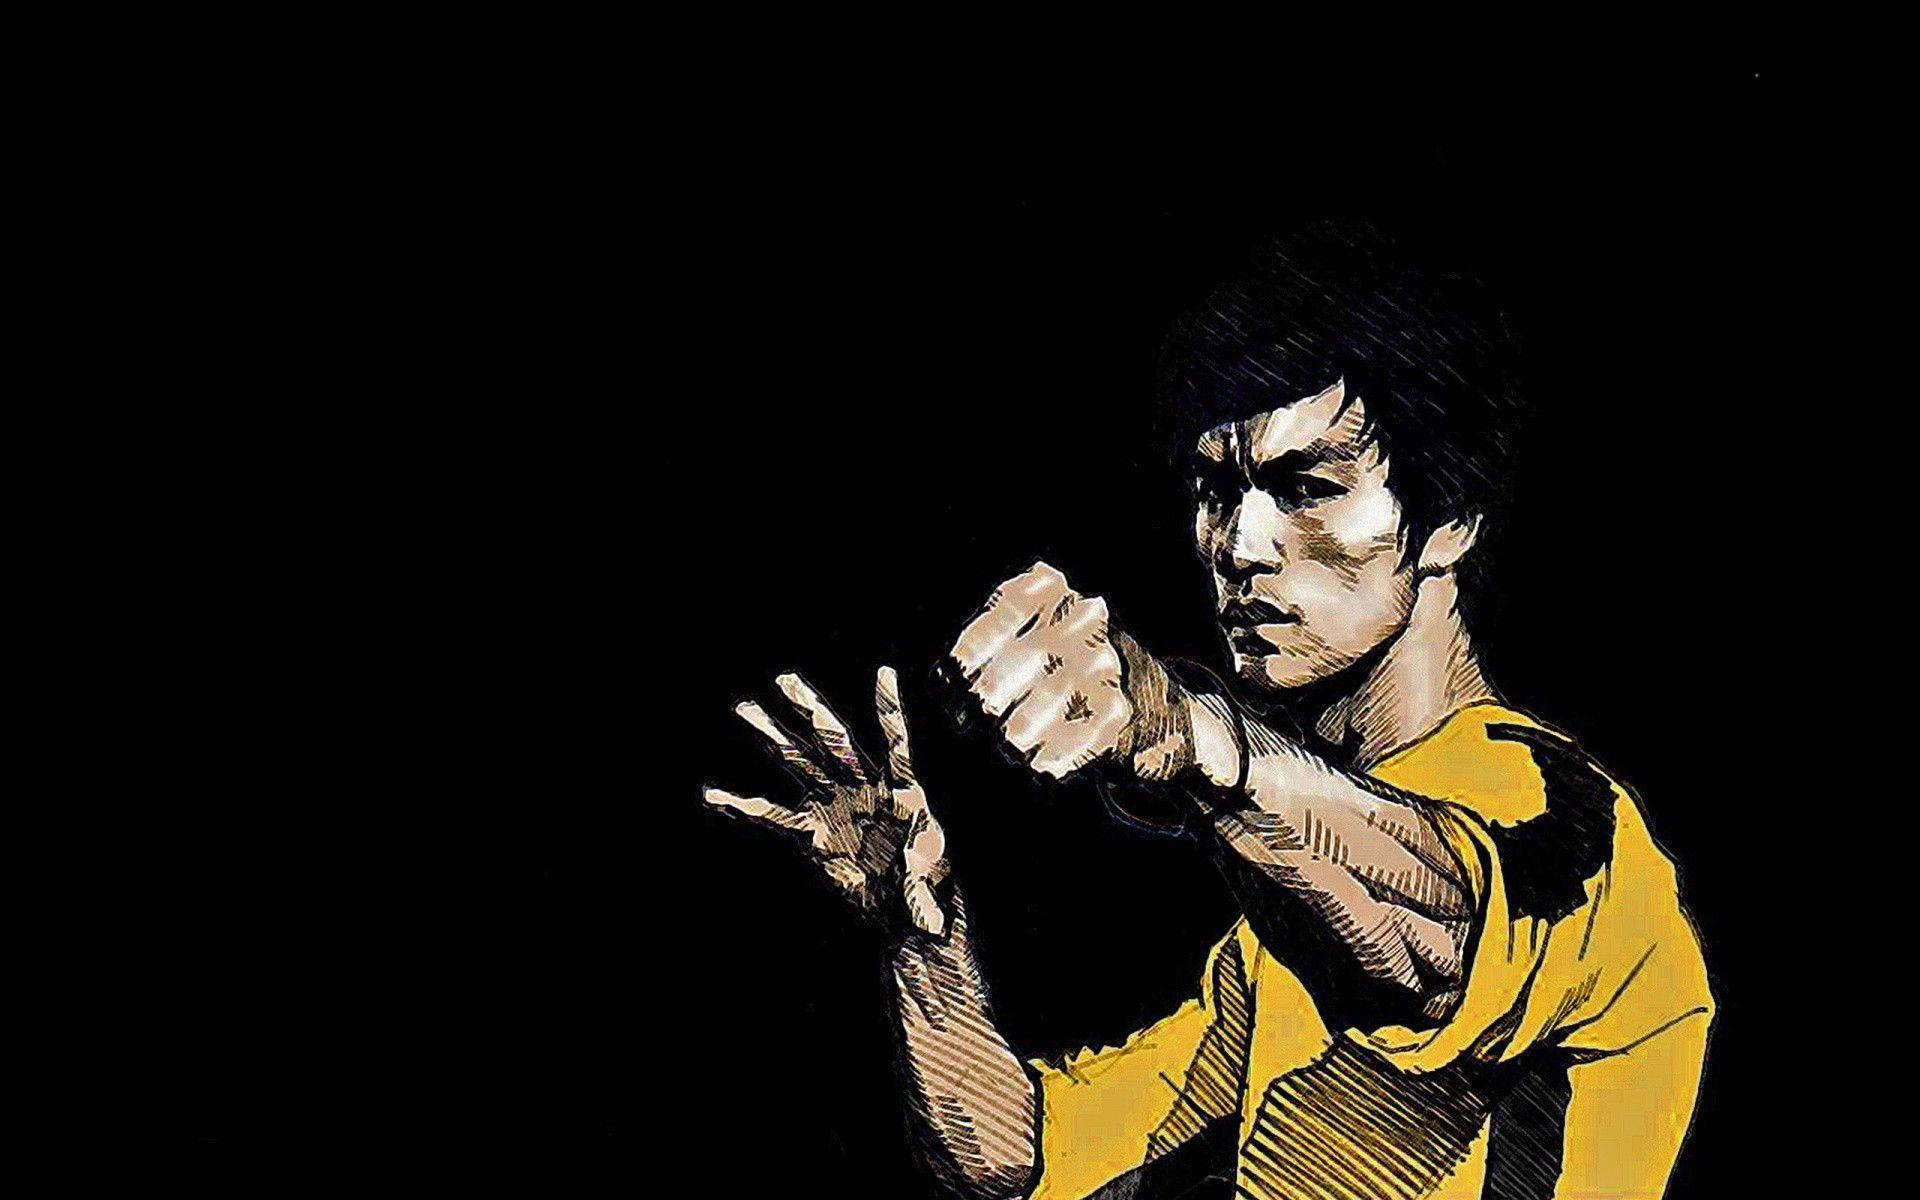 bruce lee wallpapers photos